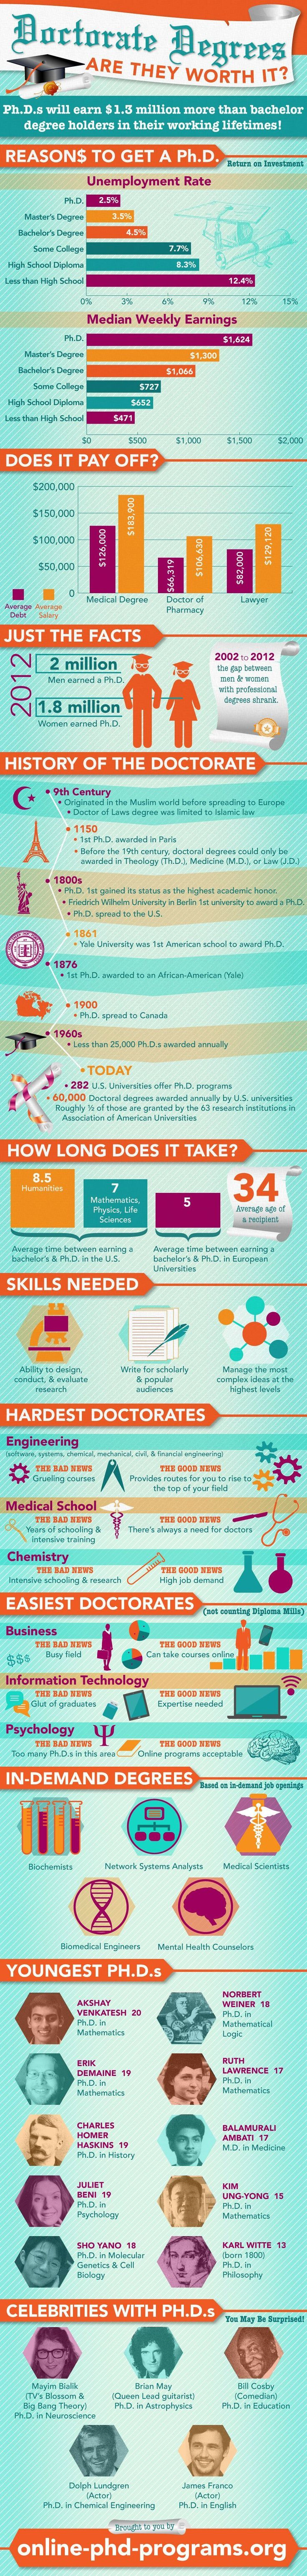 Doctorate #degrees: Are They Worth It? www.online-phd-programs.org/doctorate-degrees/